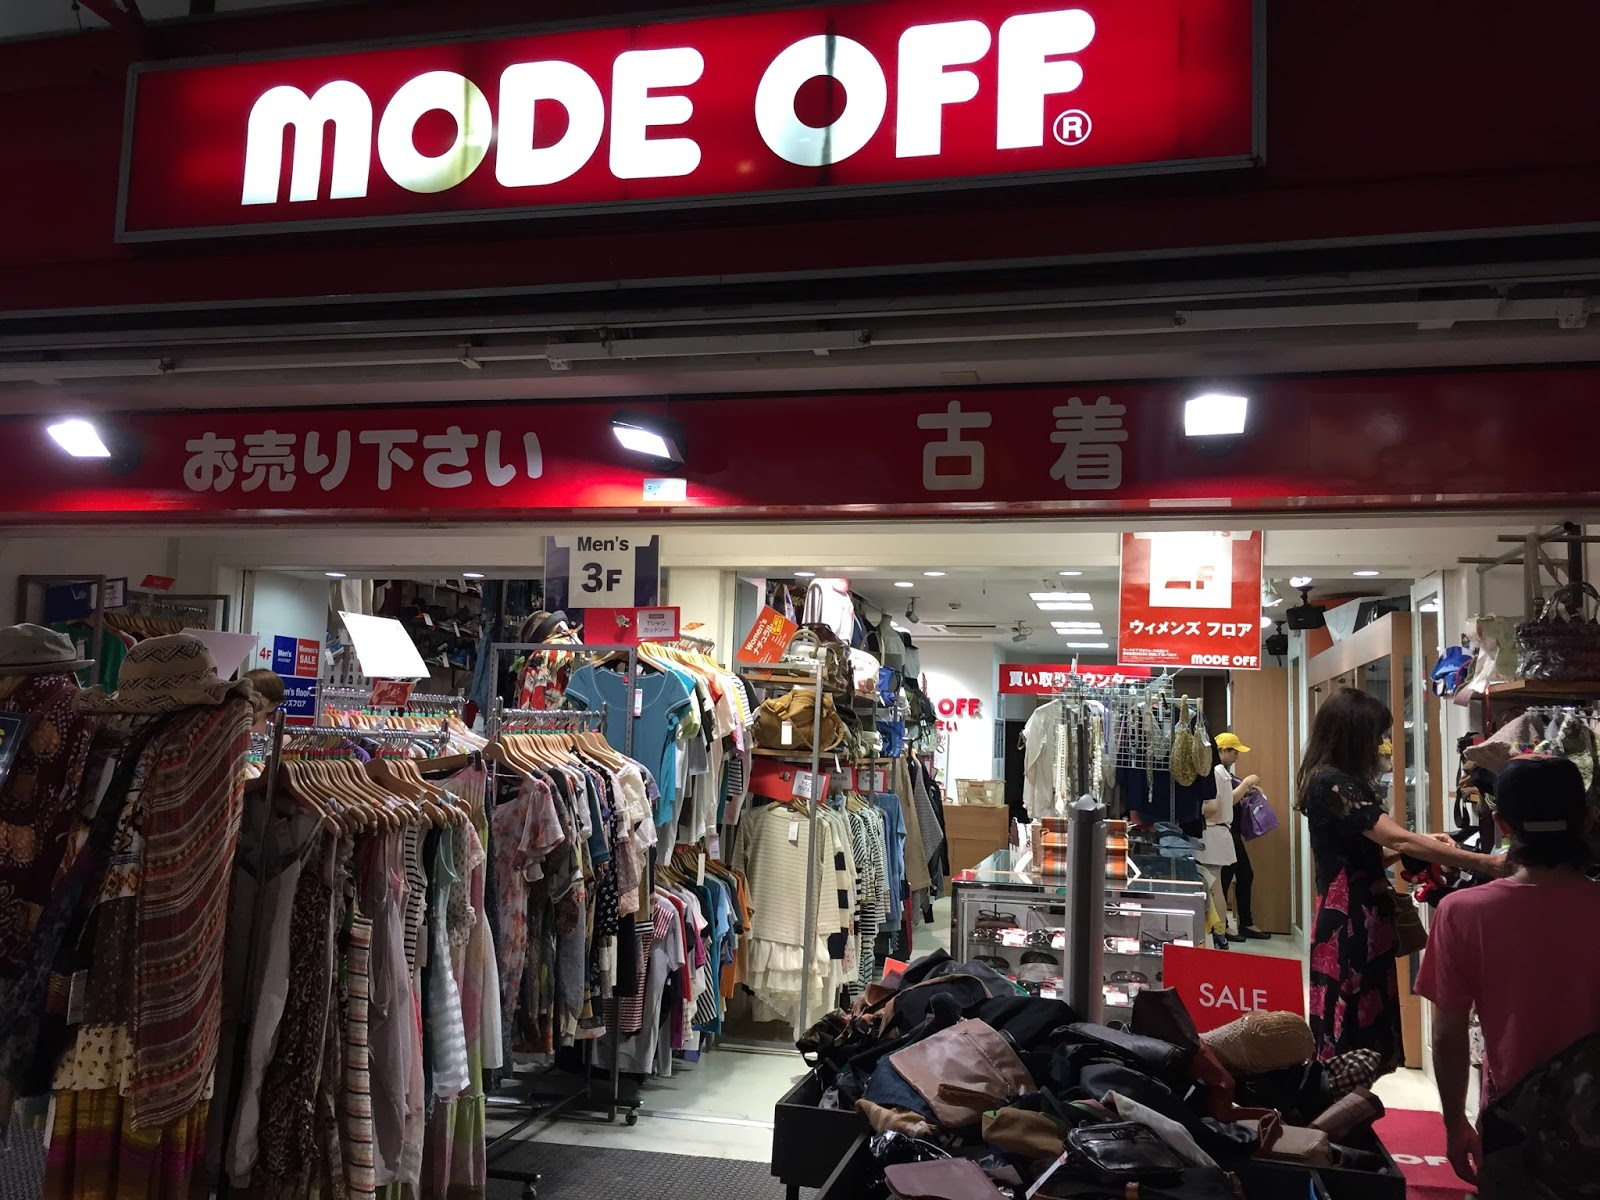 Im sure that you can spend the whole day in this area. (19/8/2015) Since many readers seemed to want to know more about this shop, I visited the shop again